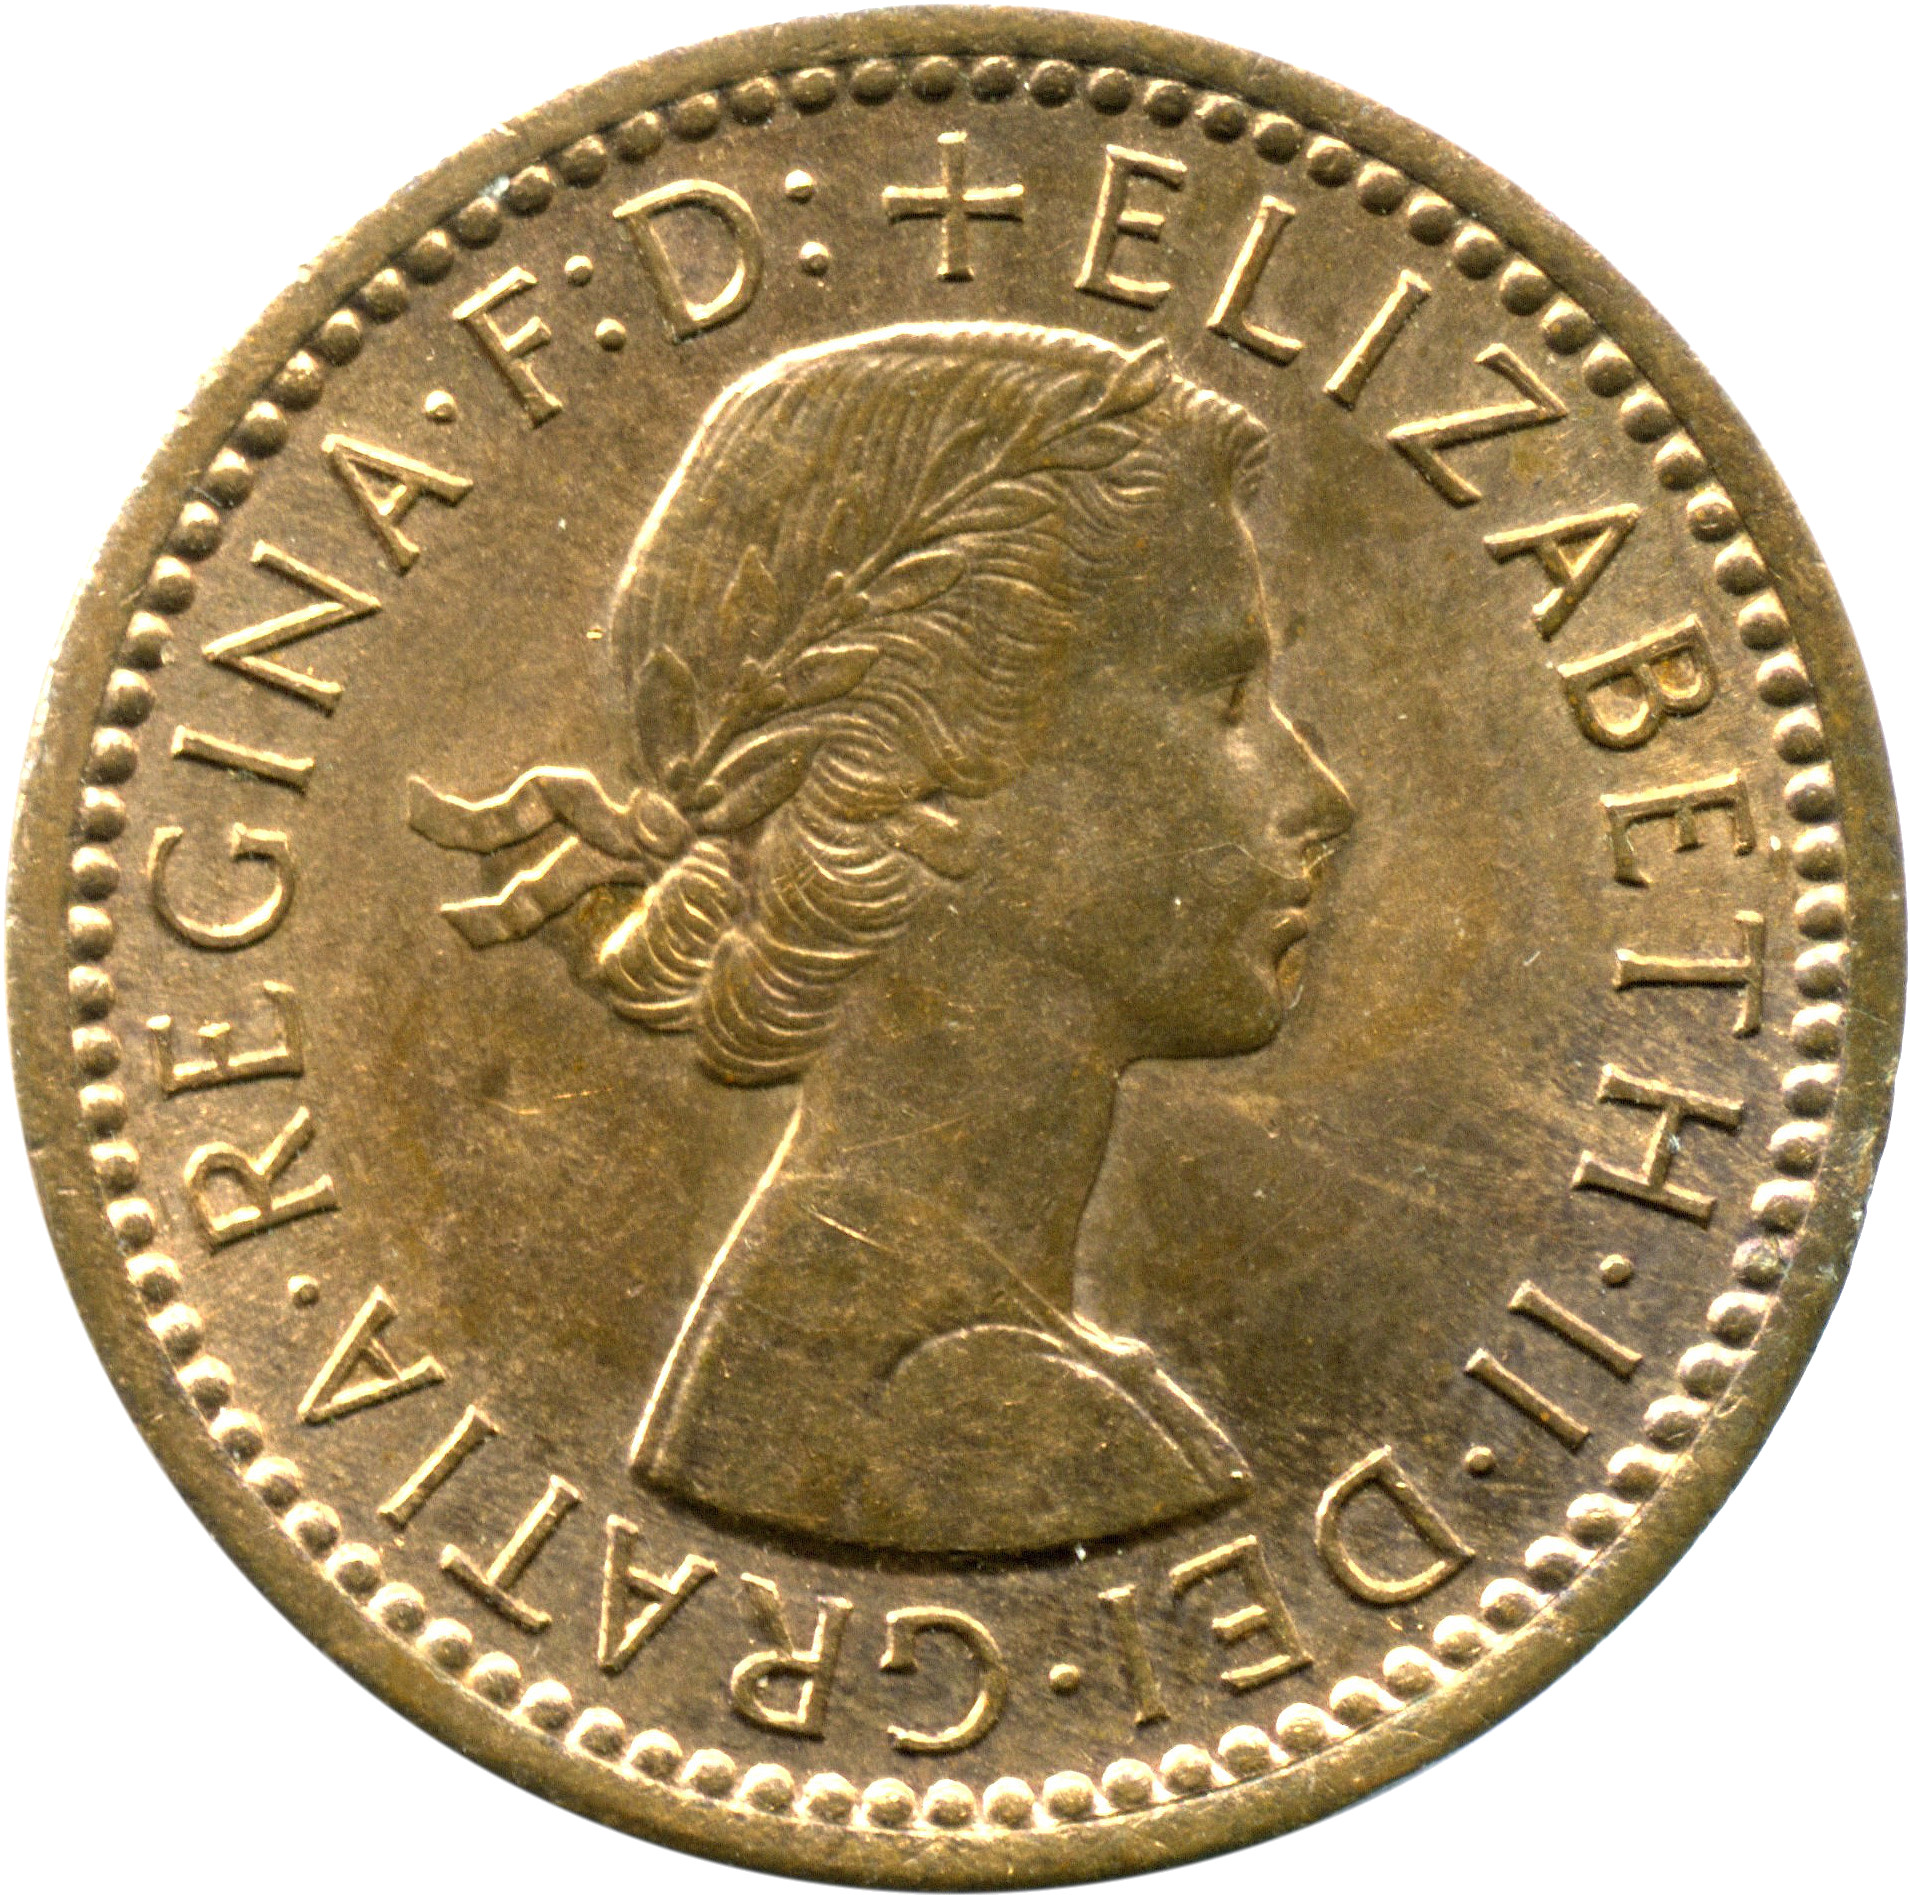 Farthing (British coin) - Wikipedia